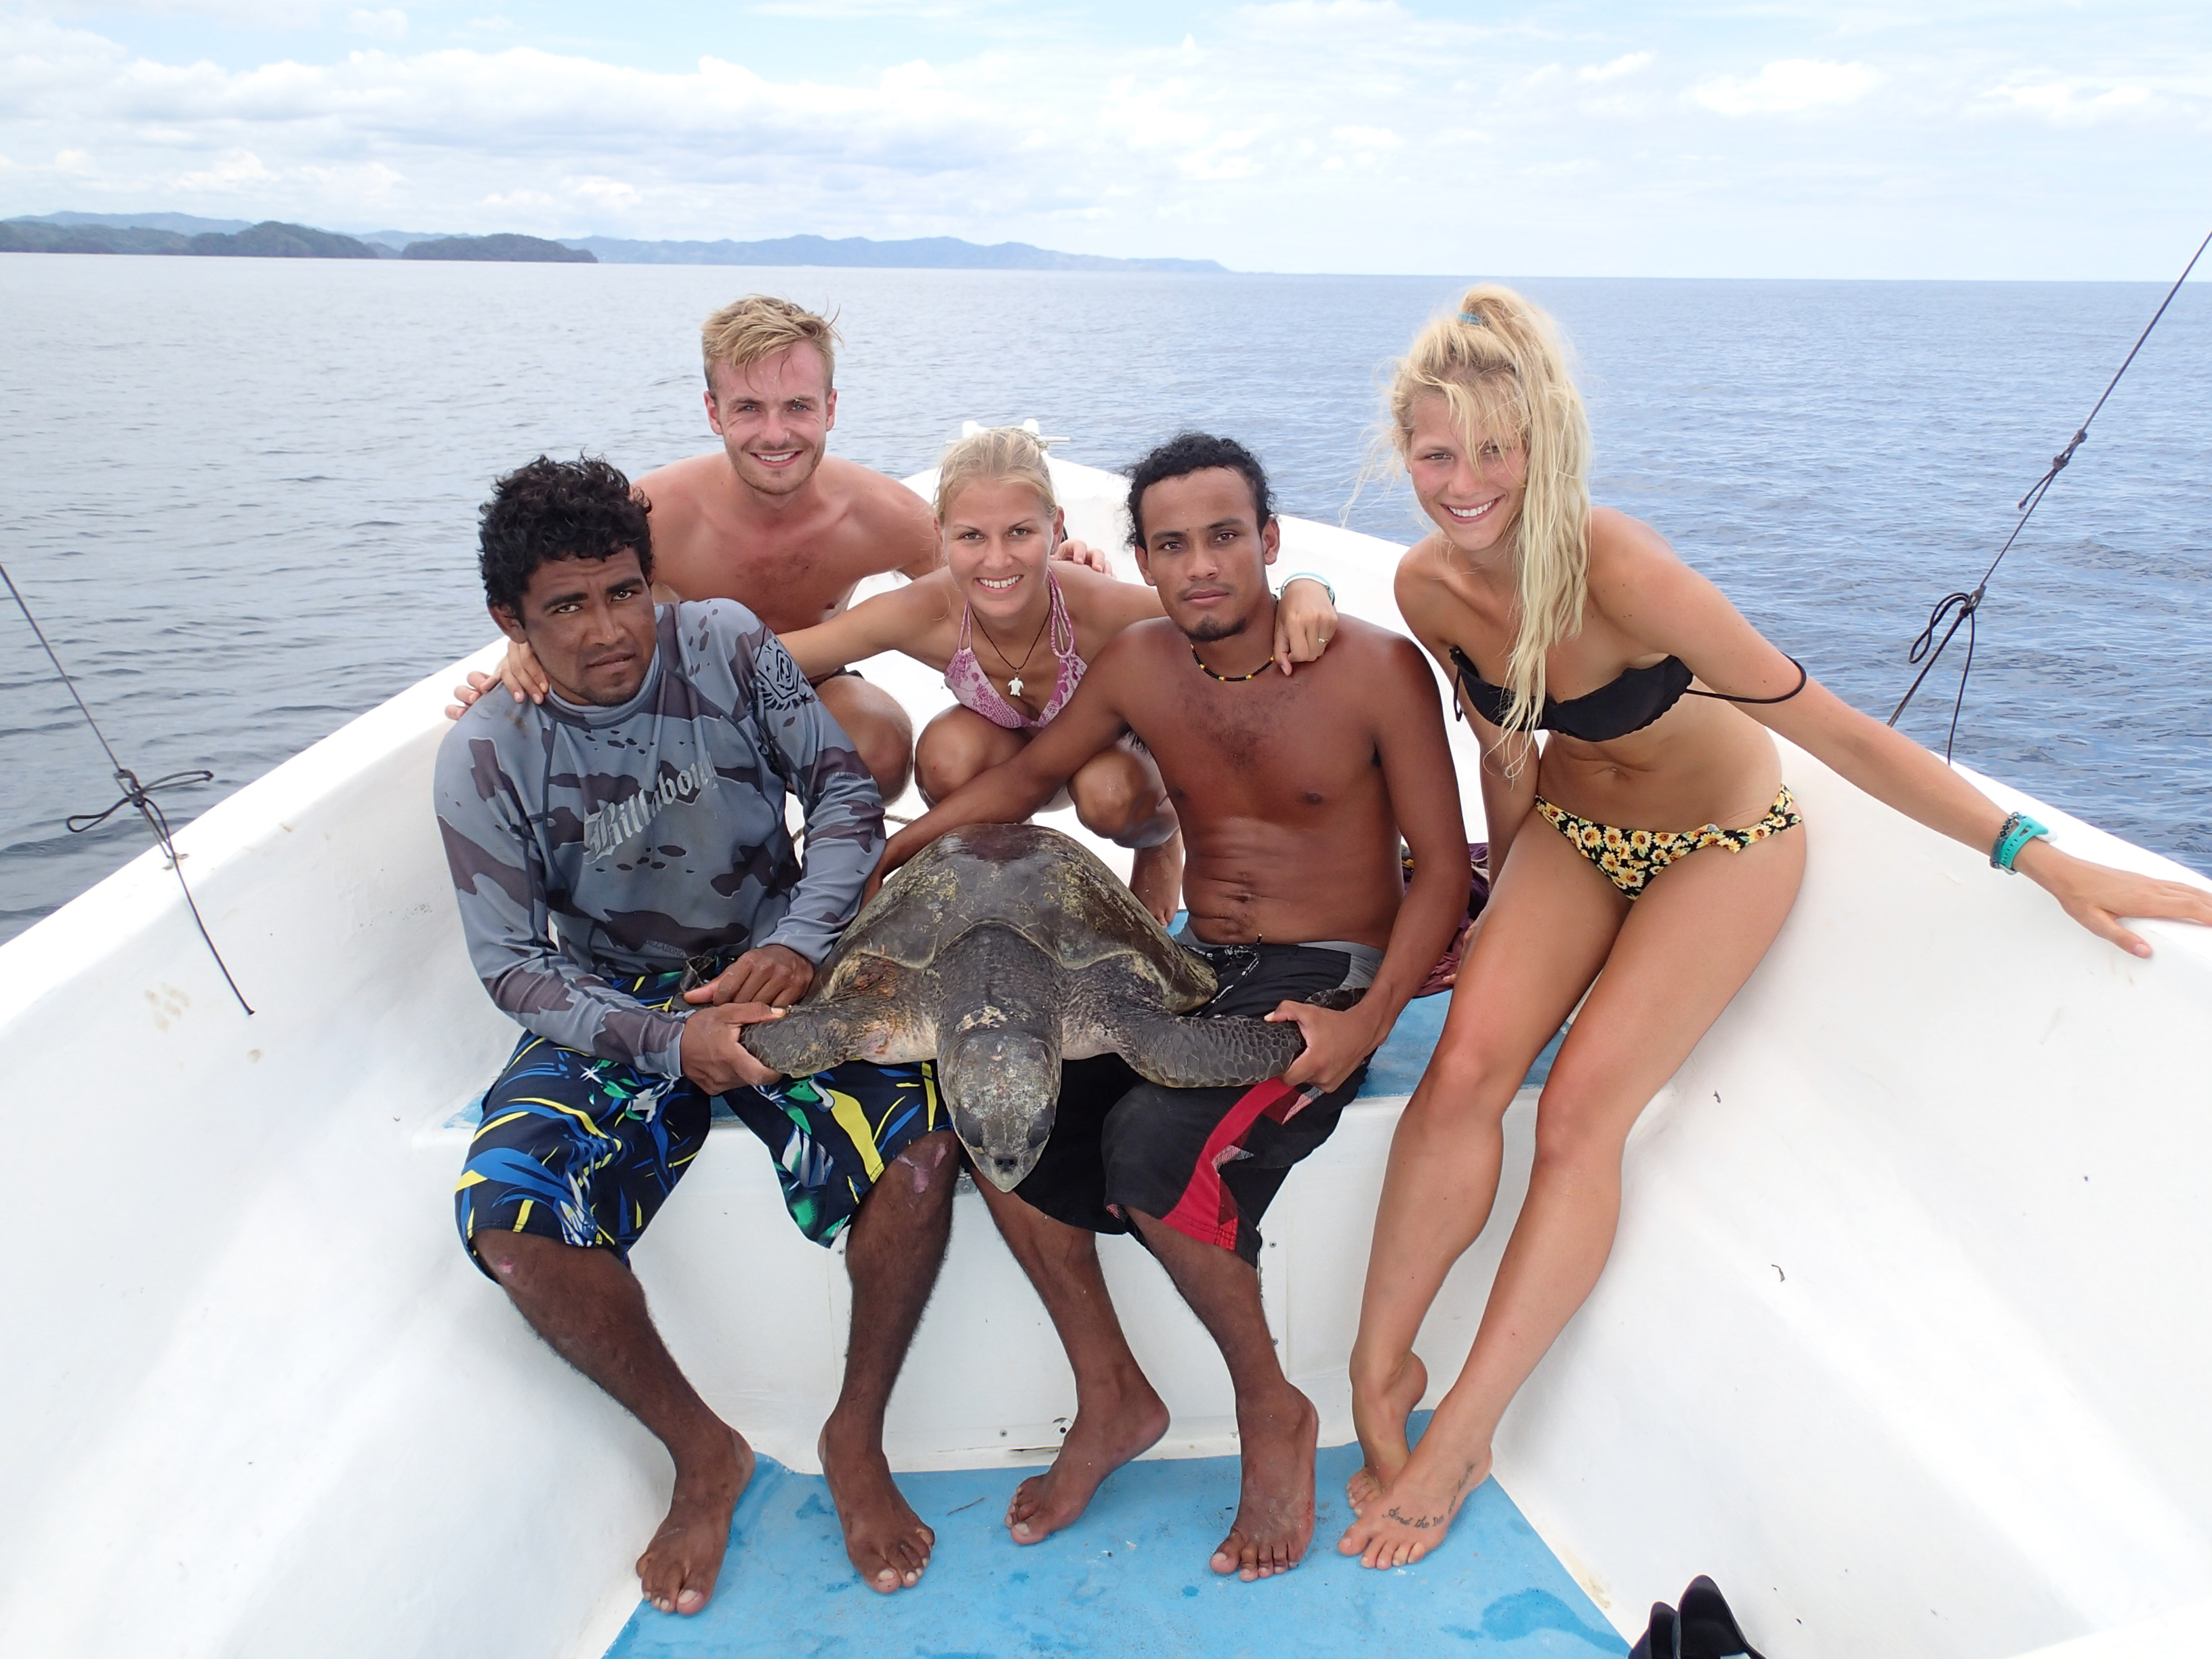 Figgener poses with a sea turtle and members of her research team on their boat in Costa Rica in 2015. L to R: Macdonal Gomez, Daniel Stuart, Christine Figgener, Andrey MacCarthy, and Vee Koleff.